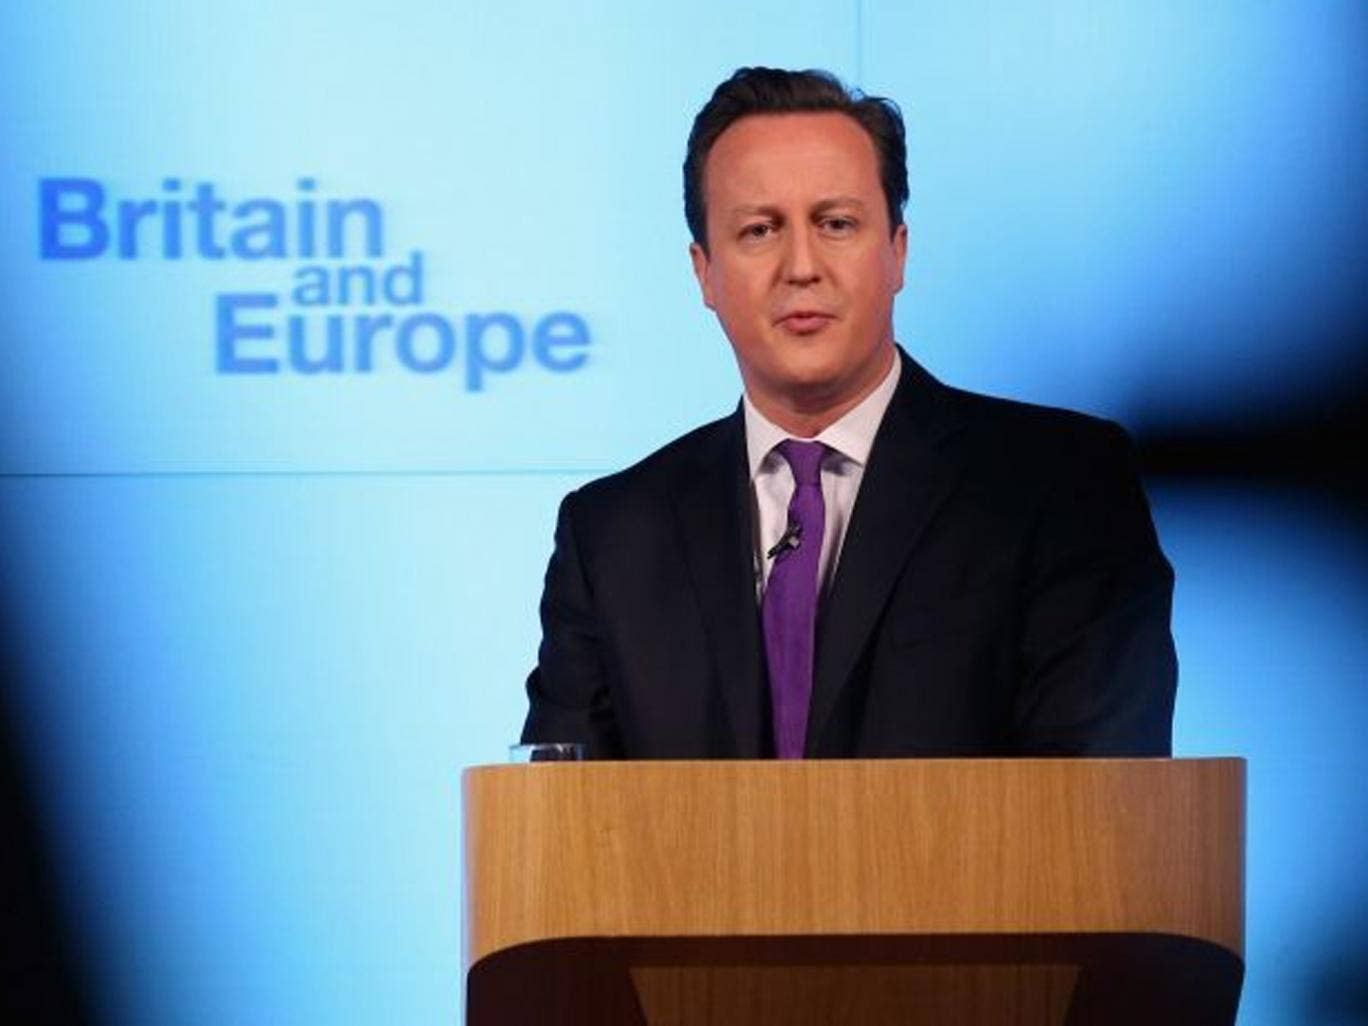 David Cameron's speech prompted the question 'what has the EU ever done for us?'